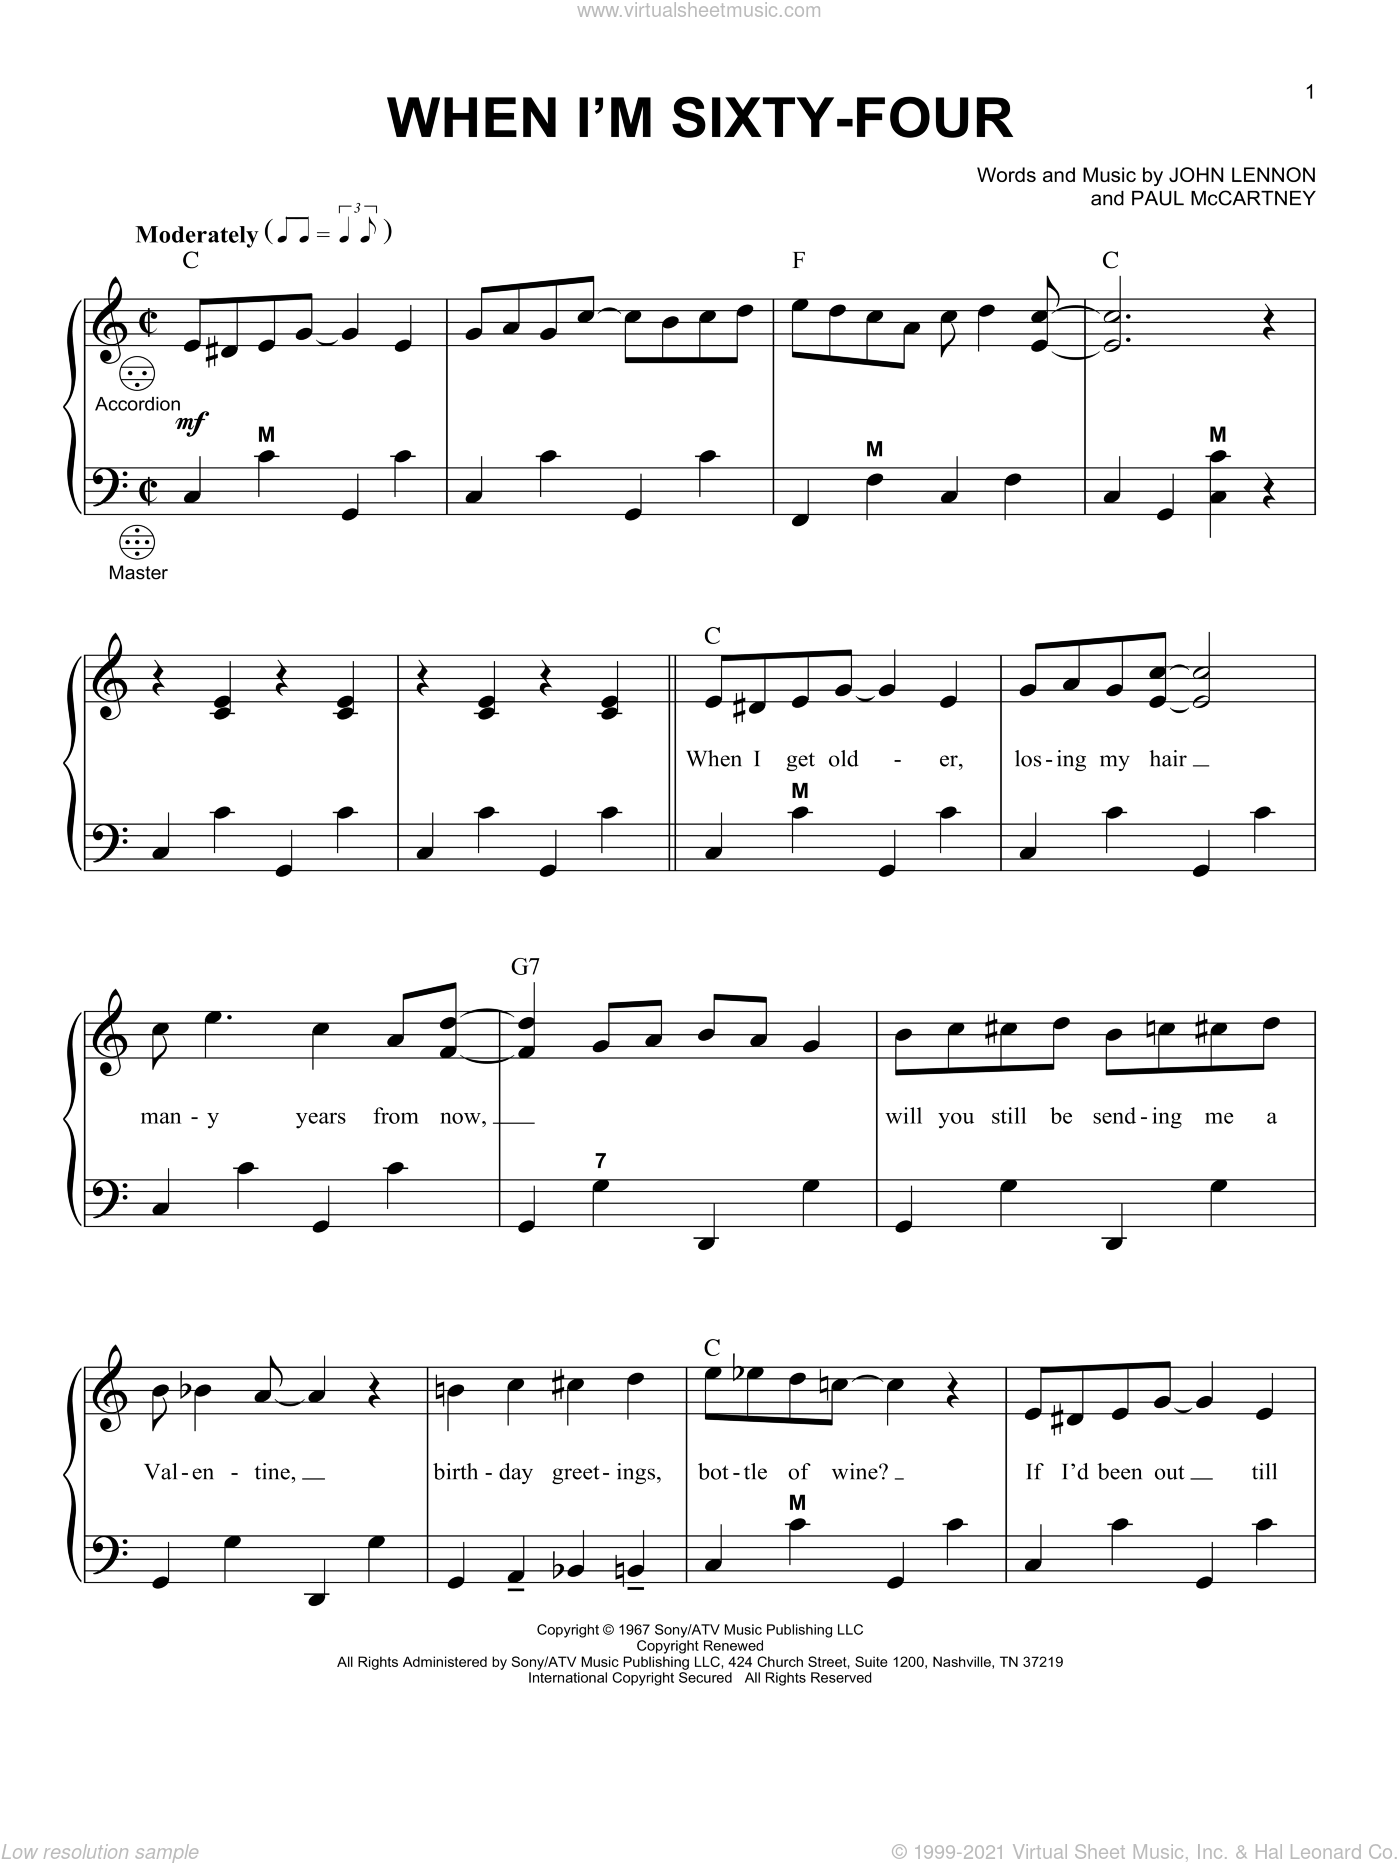 When I'm Sixty-Four sheet music for accordion by The Beatles, John Lennon and Paul McCartney, intermediate skill level